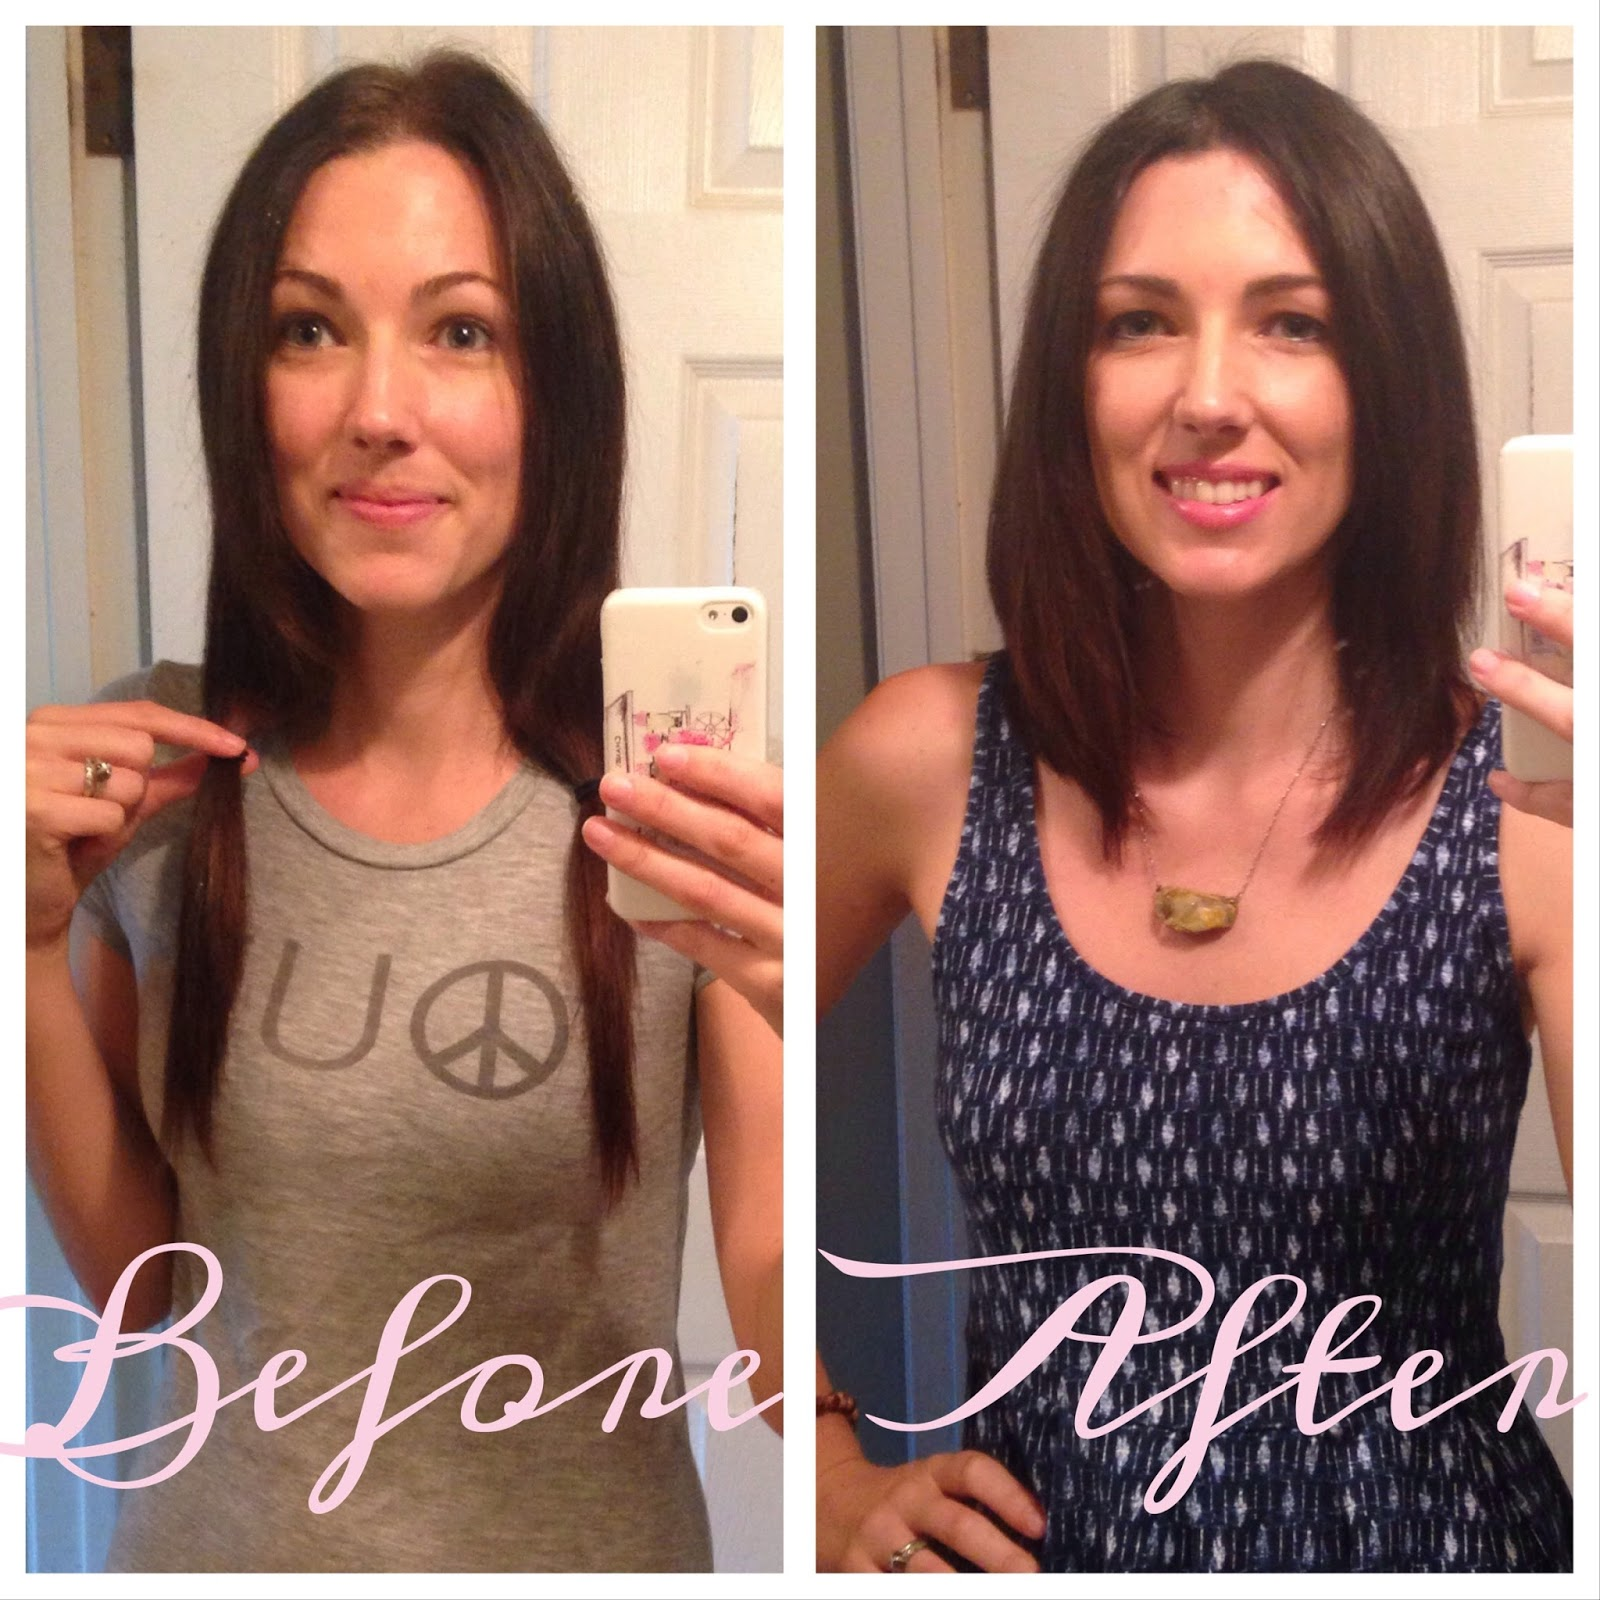 Cut 9 inches of hair to donate to CWHL